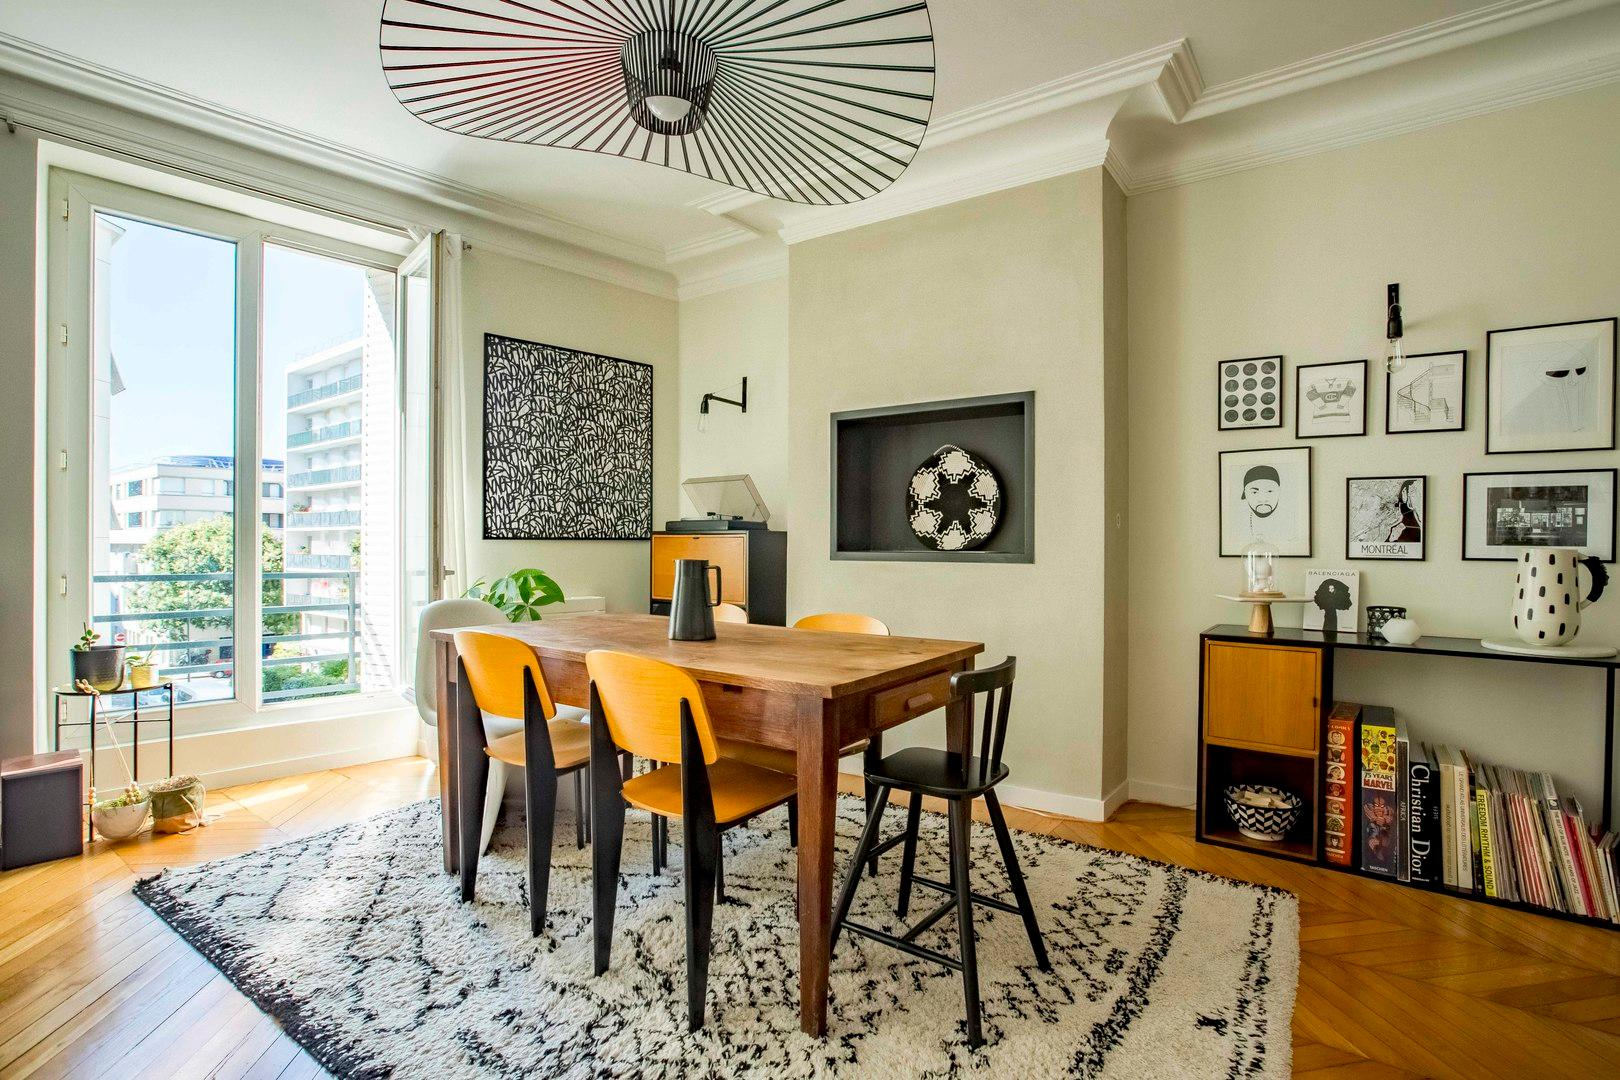 Property Image 2 - Chic Parisian Apartment in the 11th with an Arty Twist